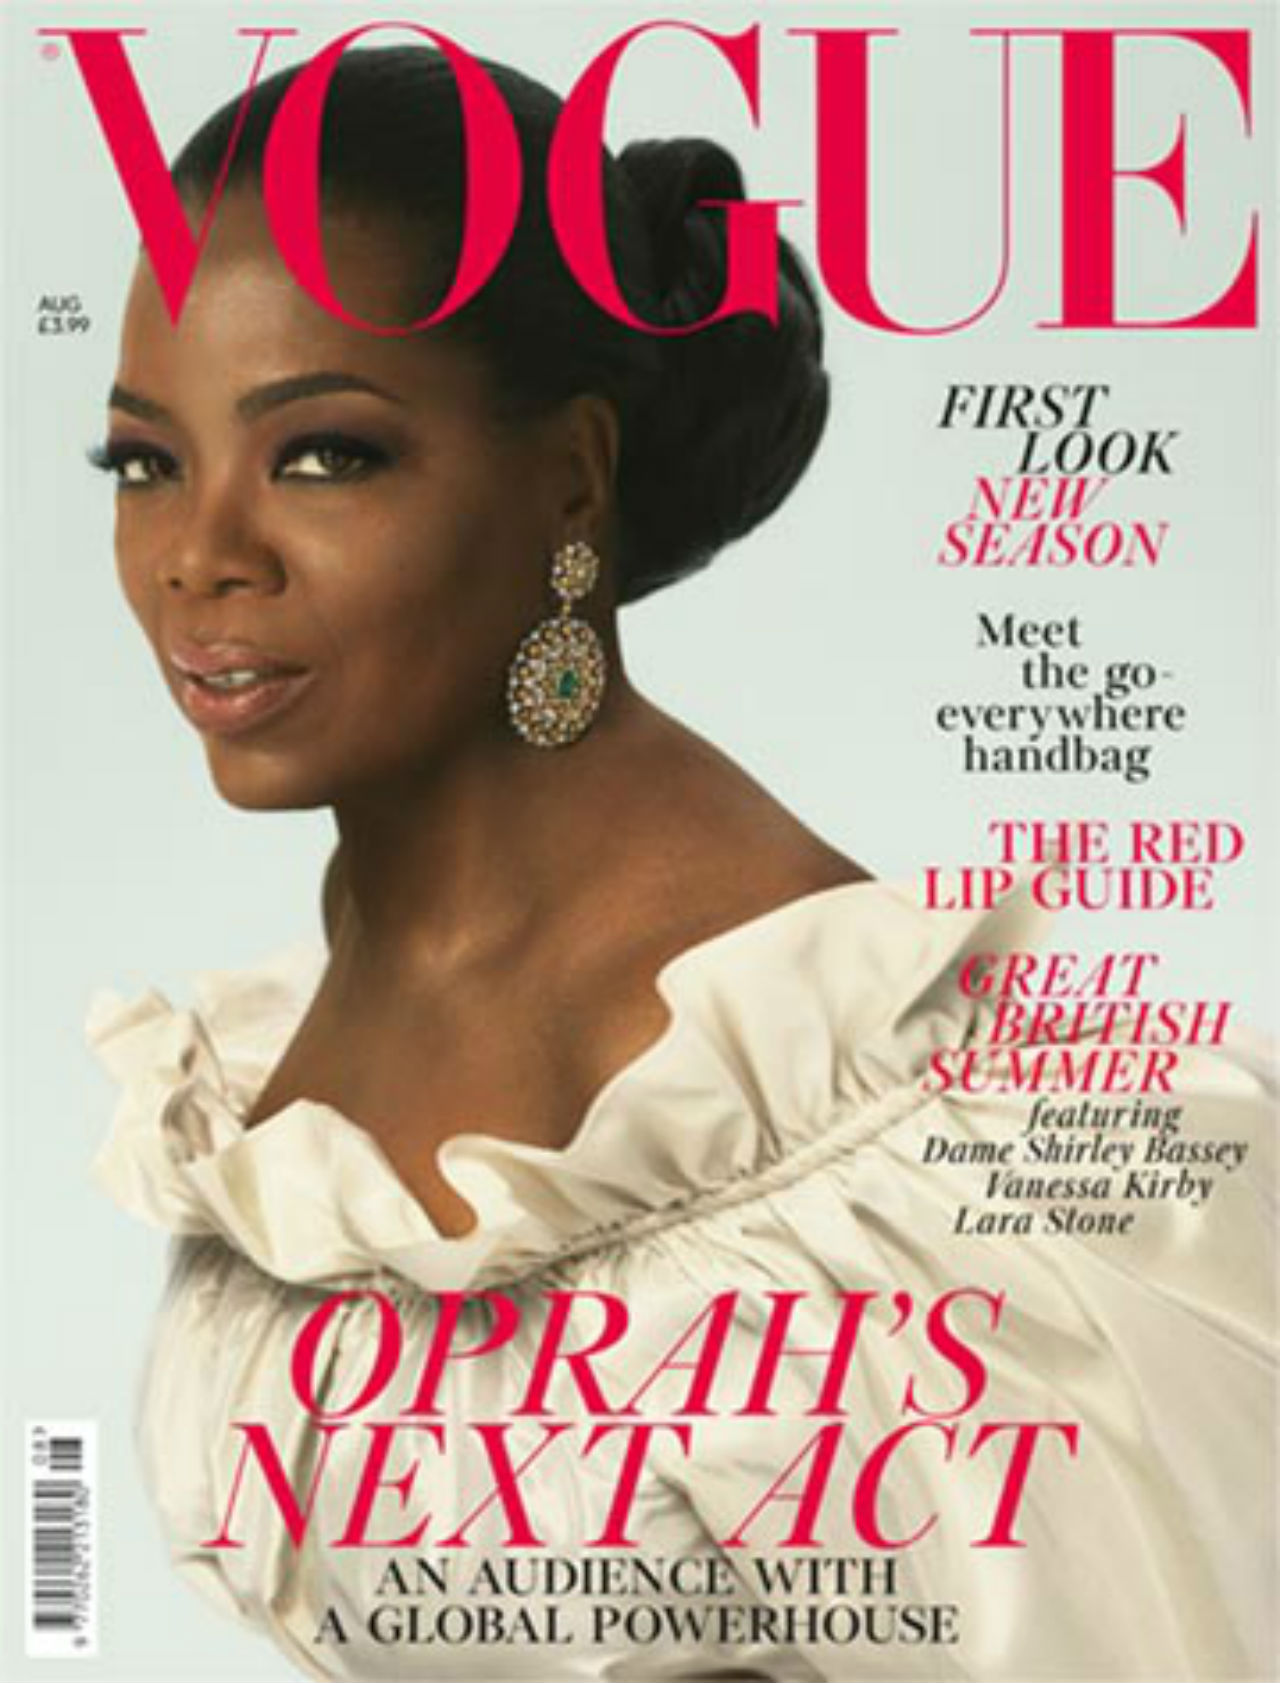 Oprah Winfrey on Vogue cover